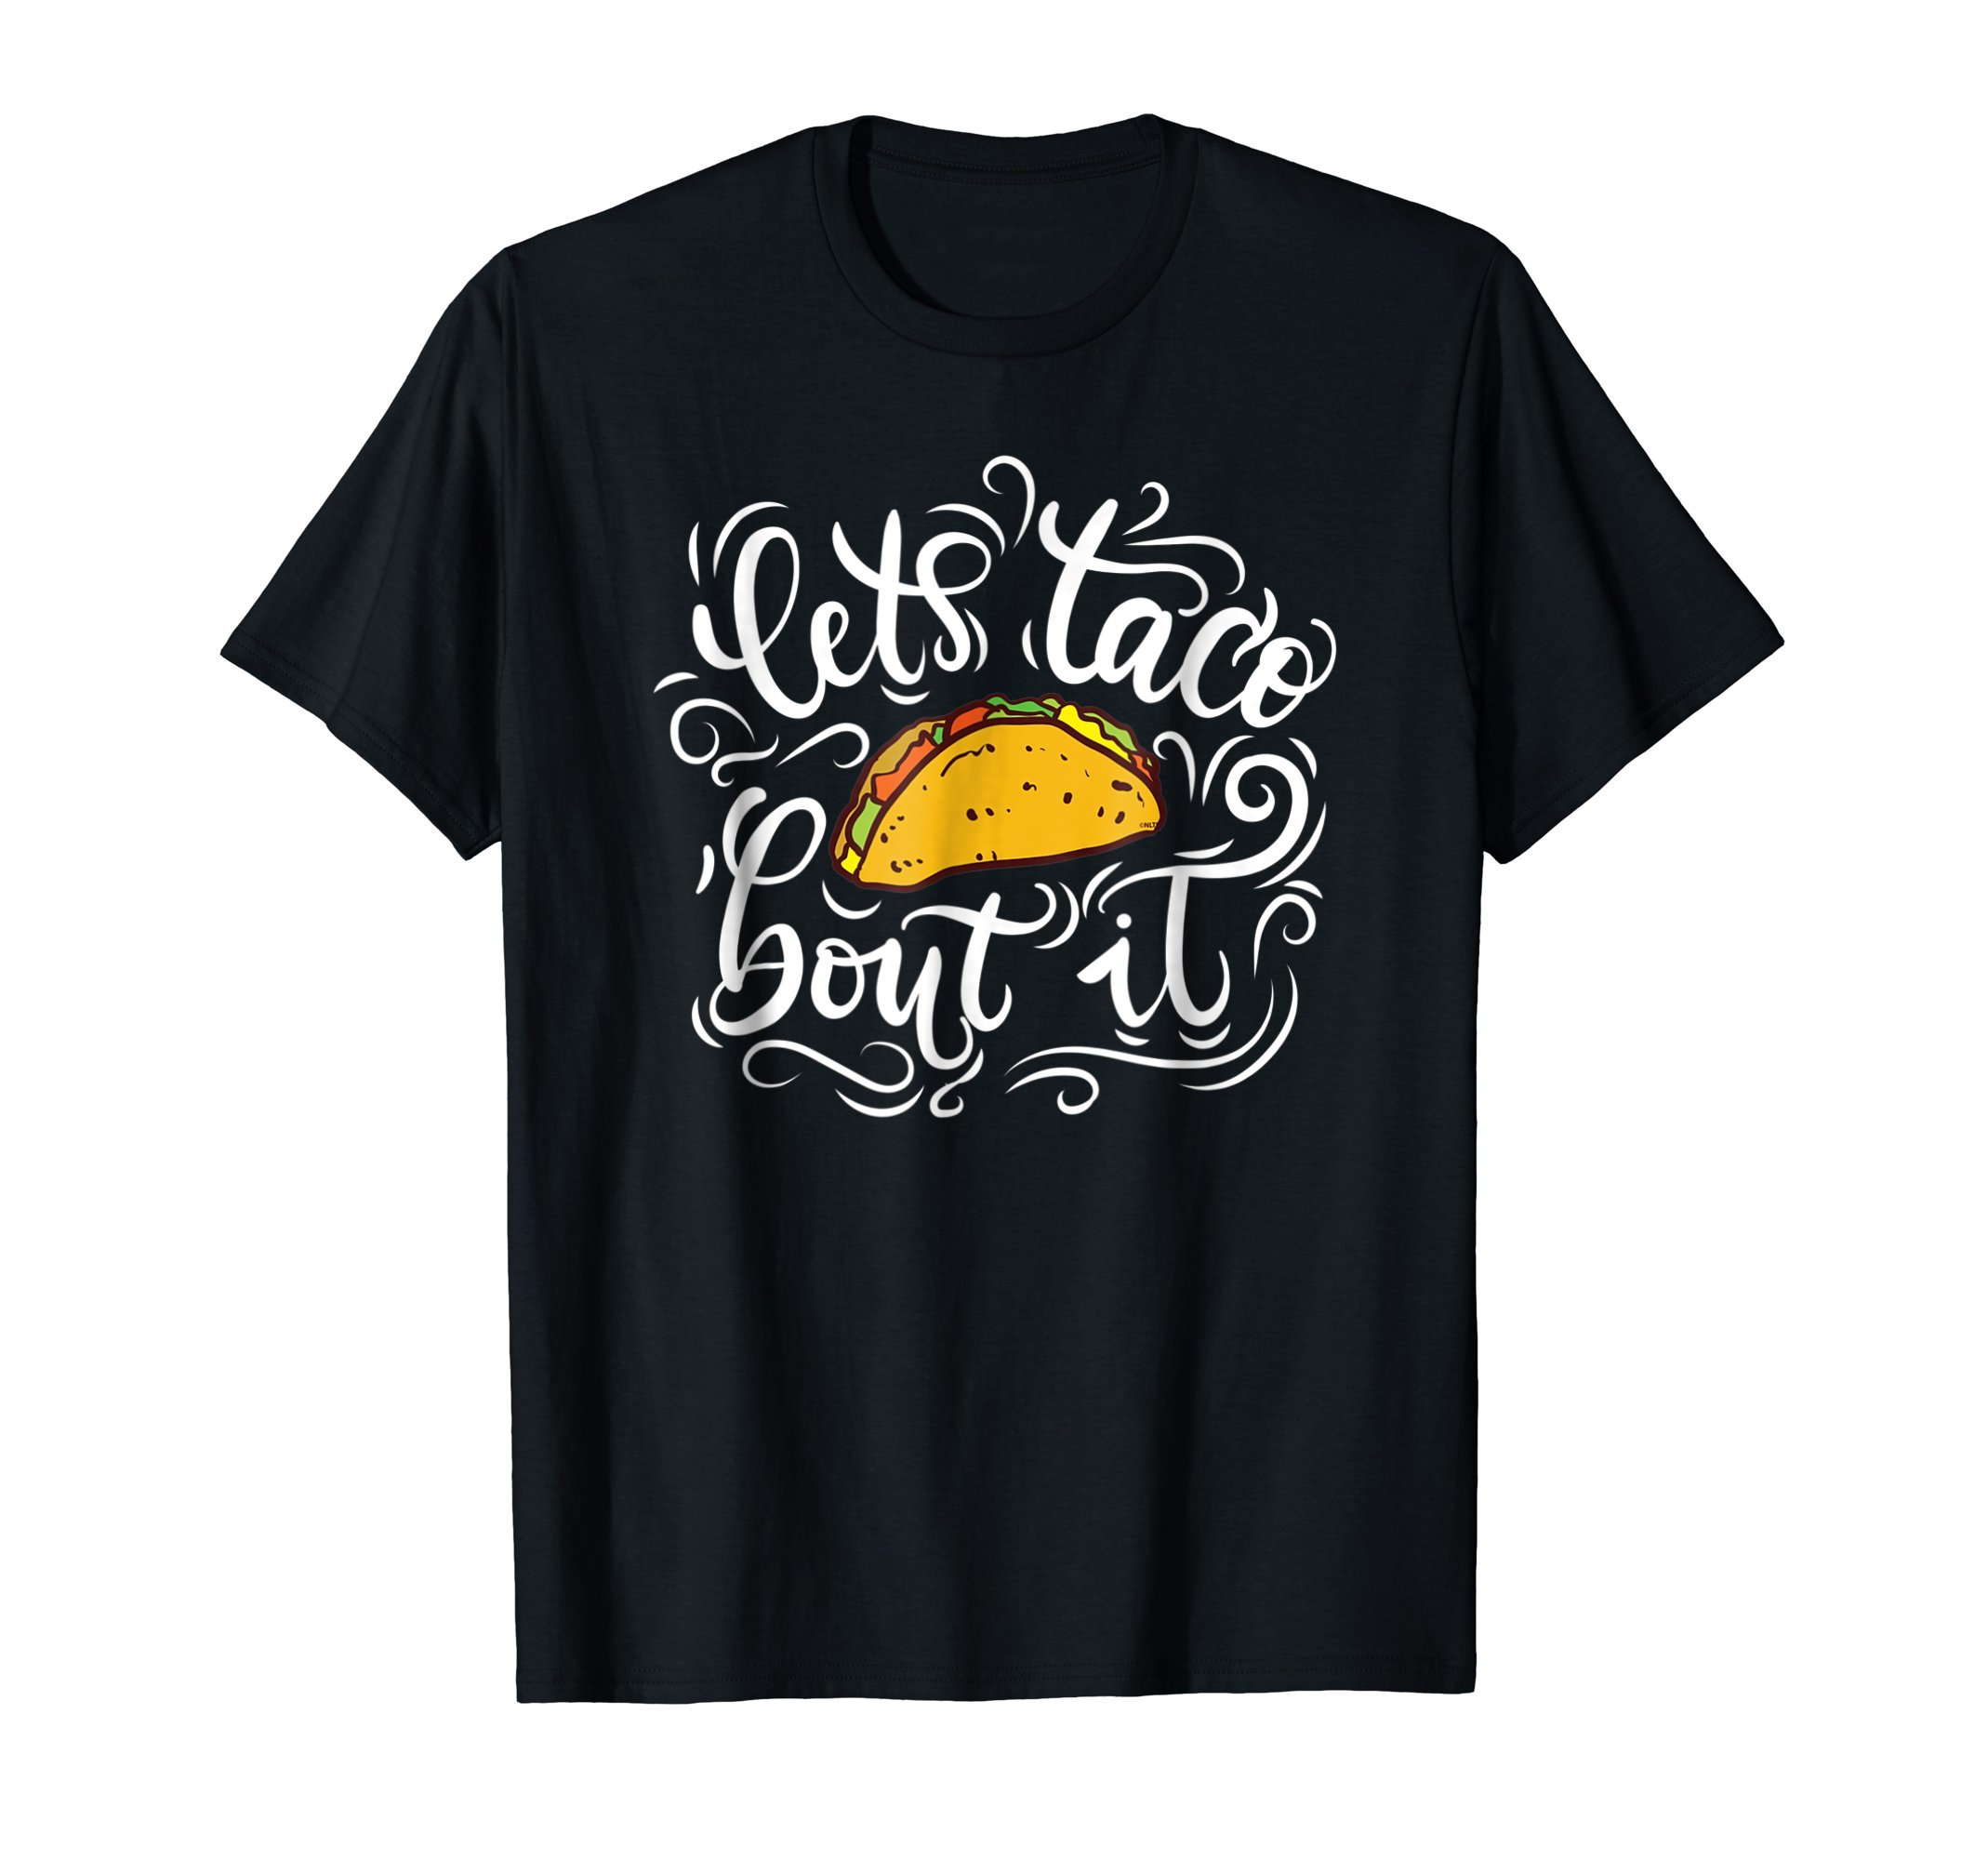 Let-us-taco-bout-it-Funny-Pun-Humor-T-Shirt-Tee-Shirt-gift